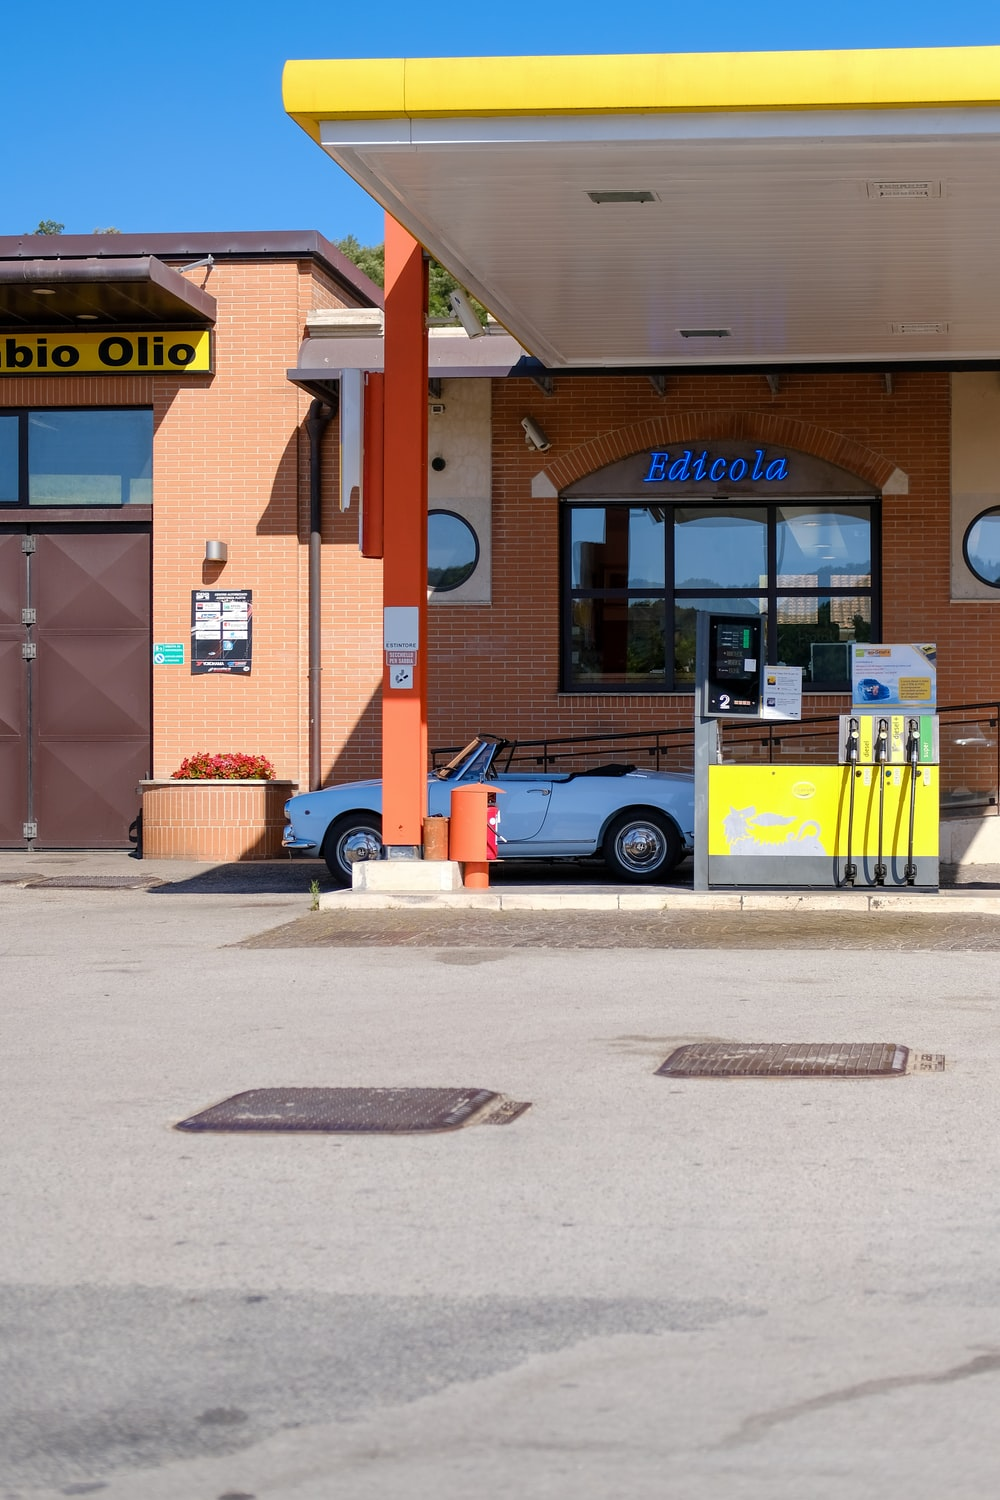 white convertible on gasoline station